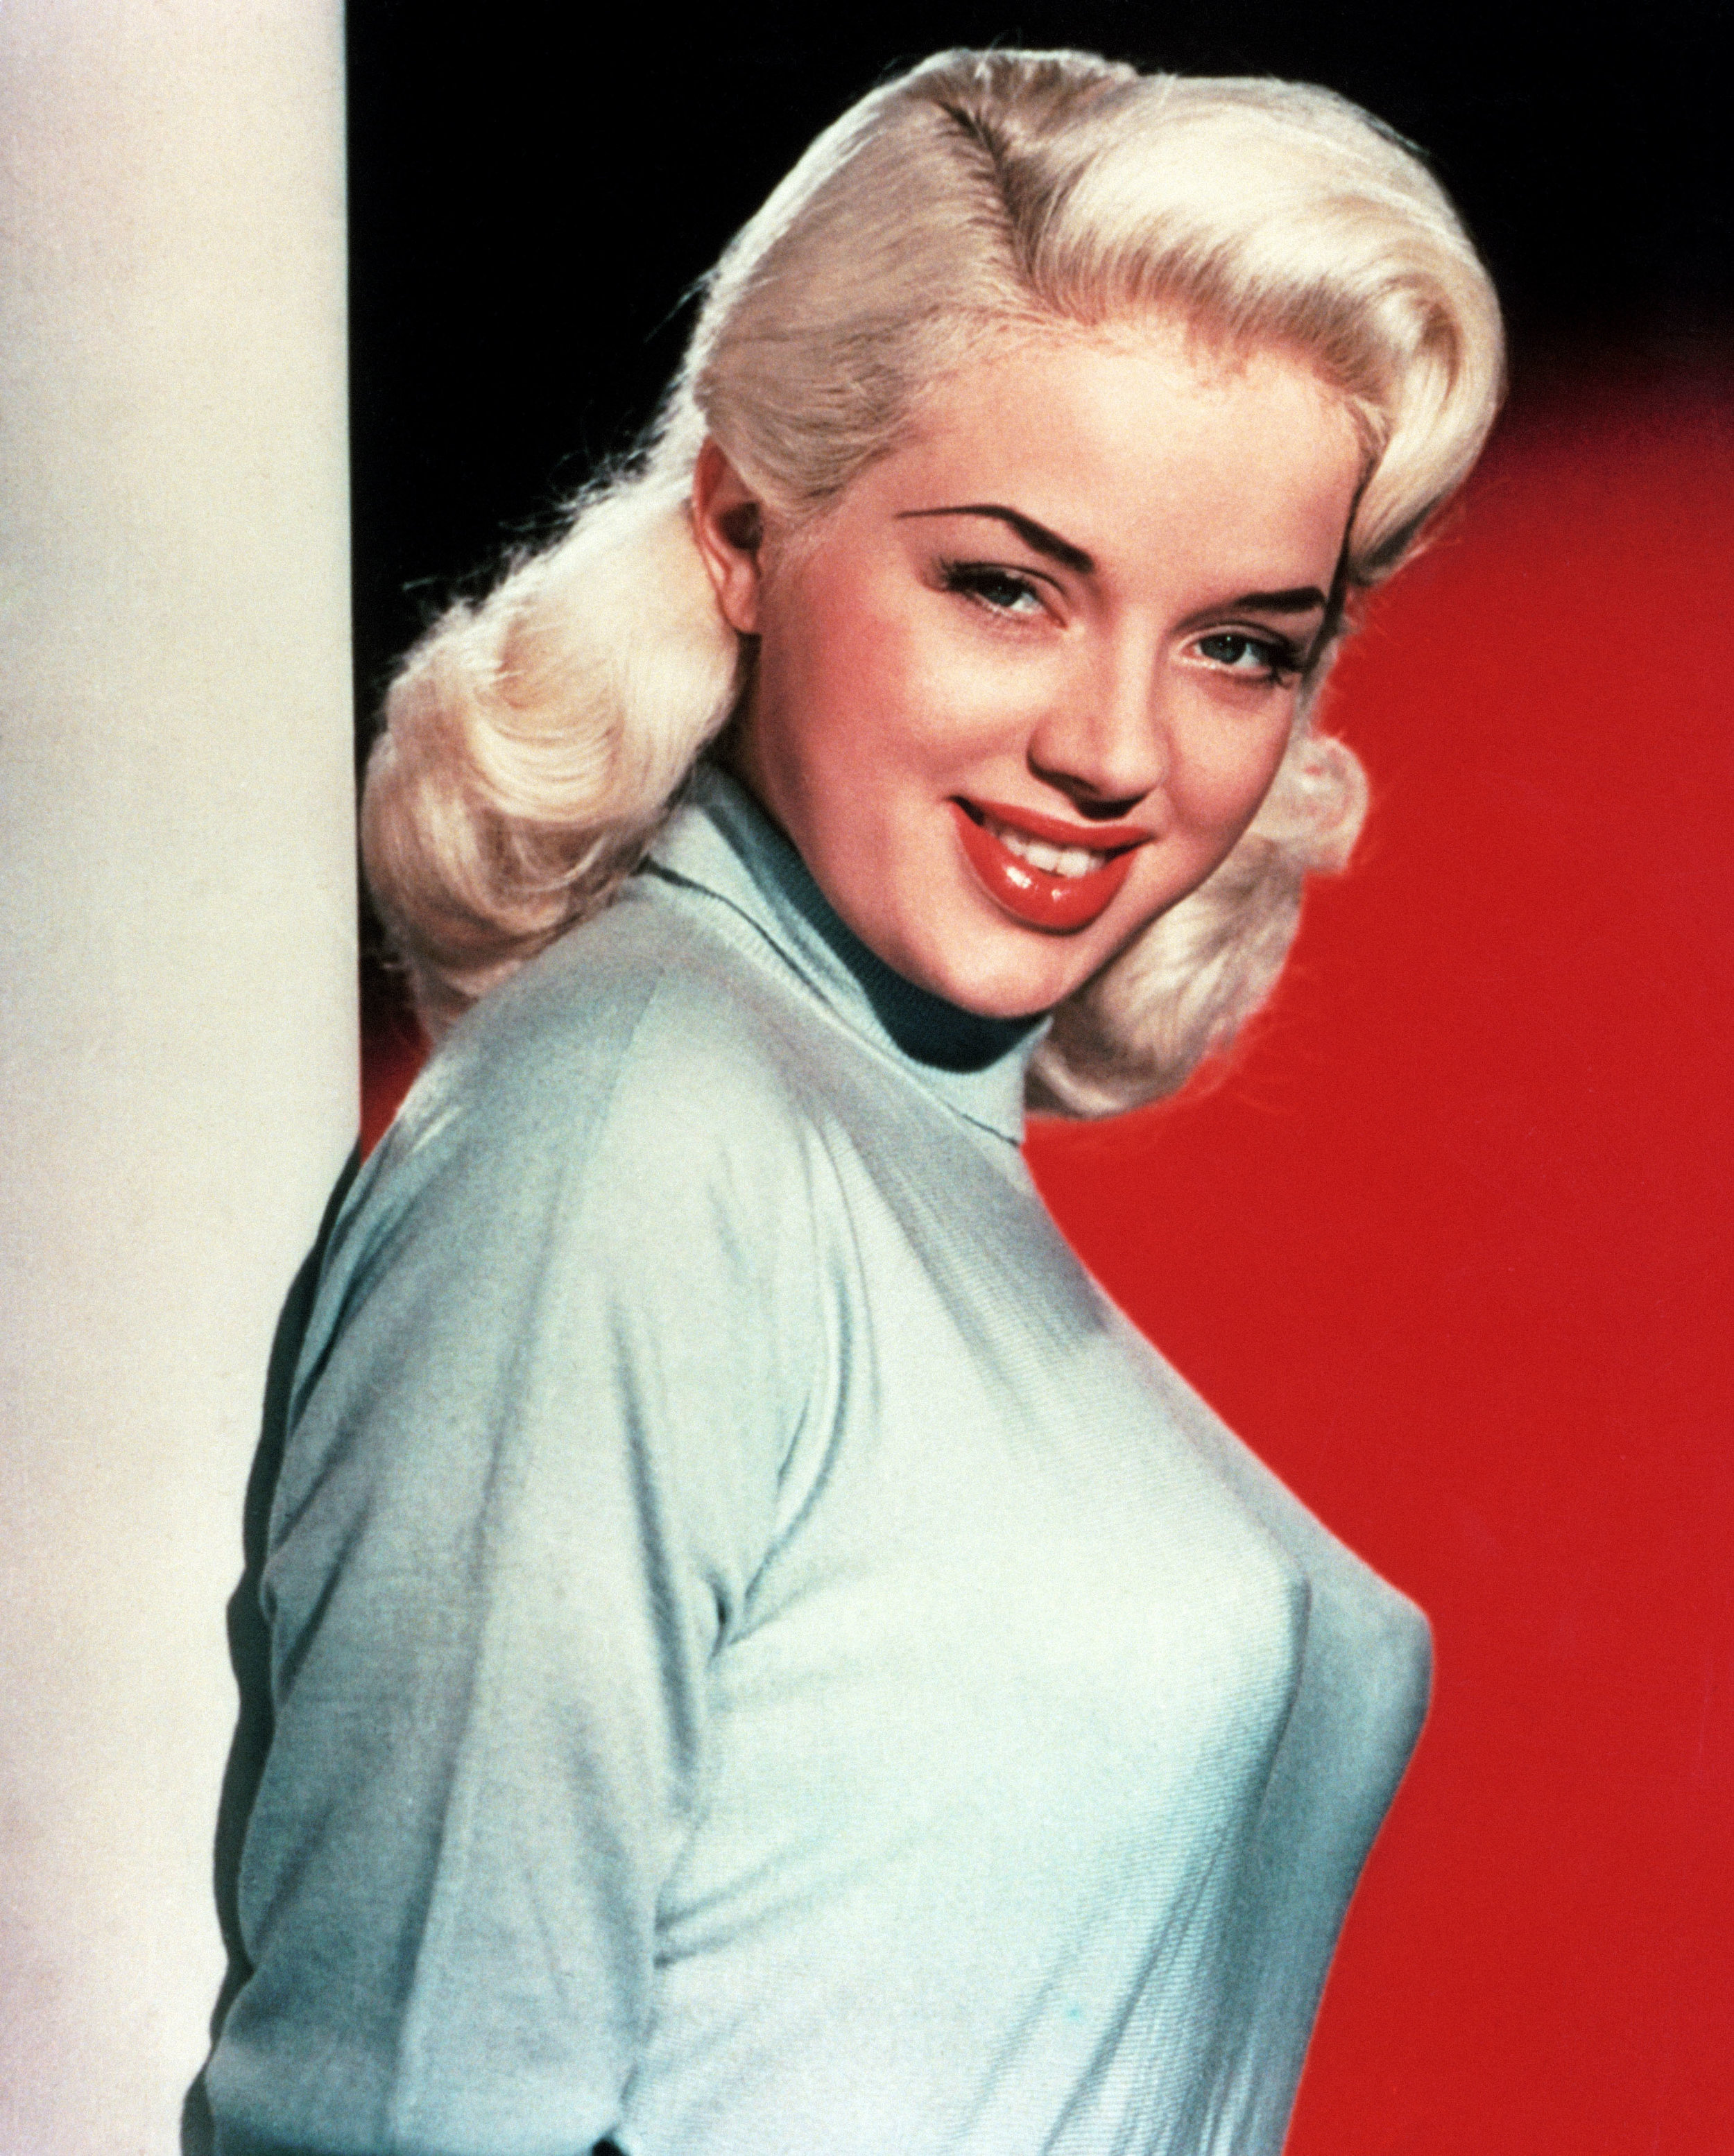 Diana Dors: Britain's answer to Monroe